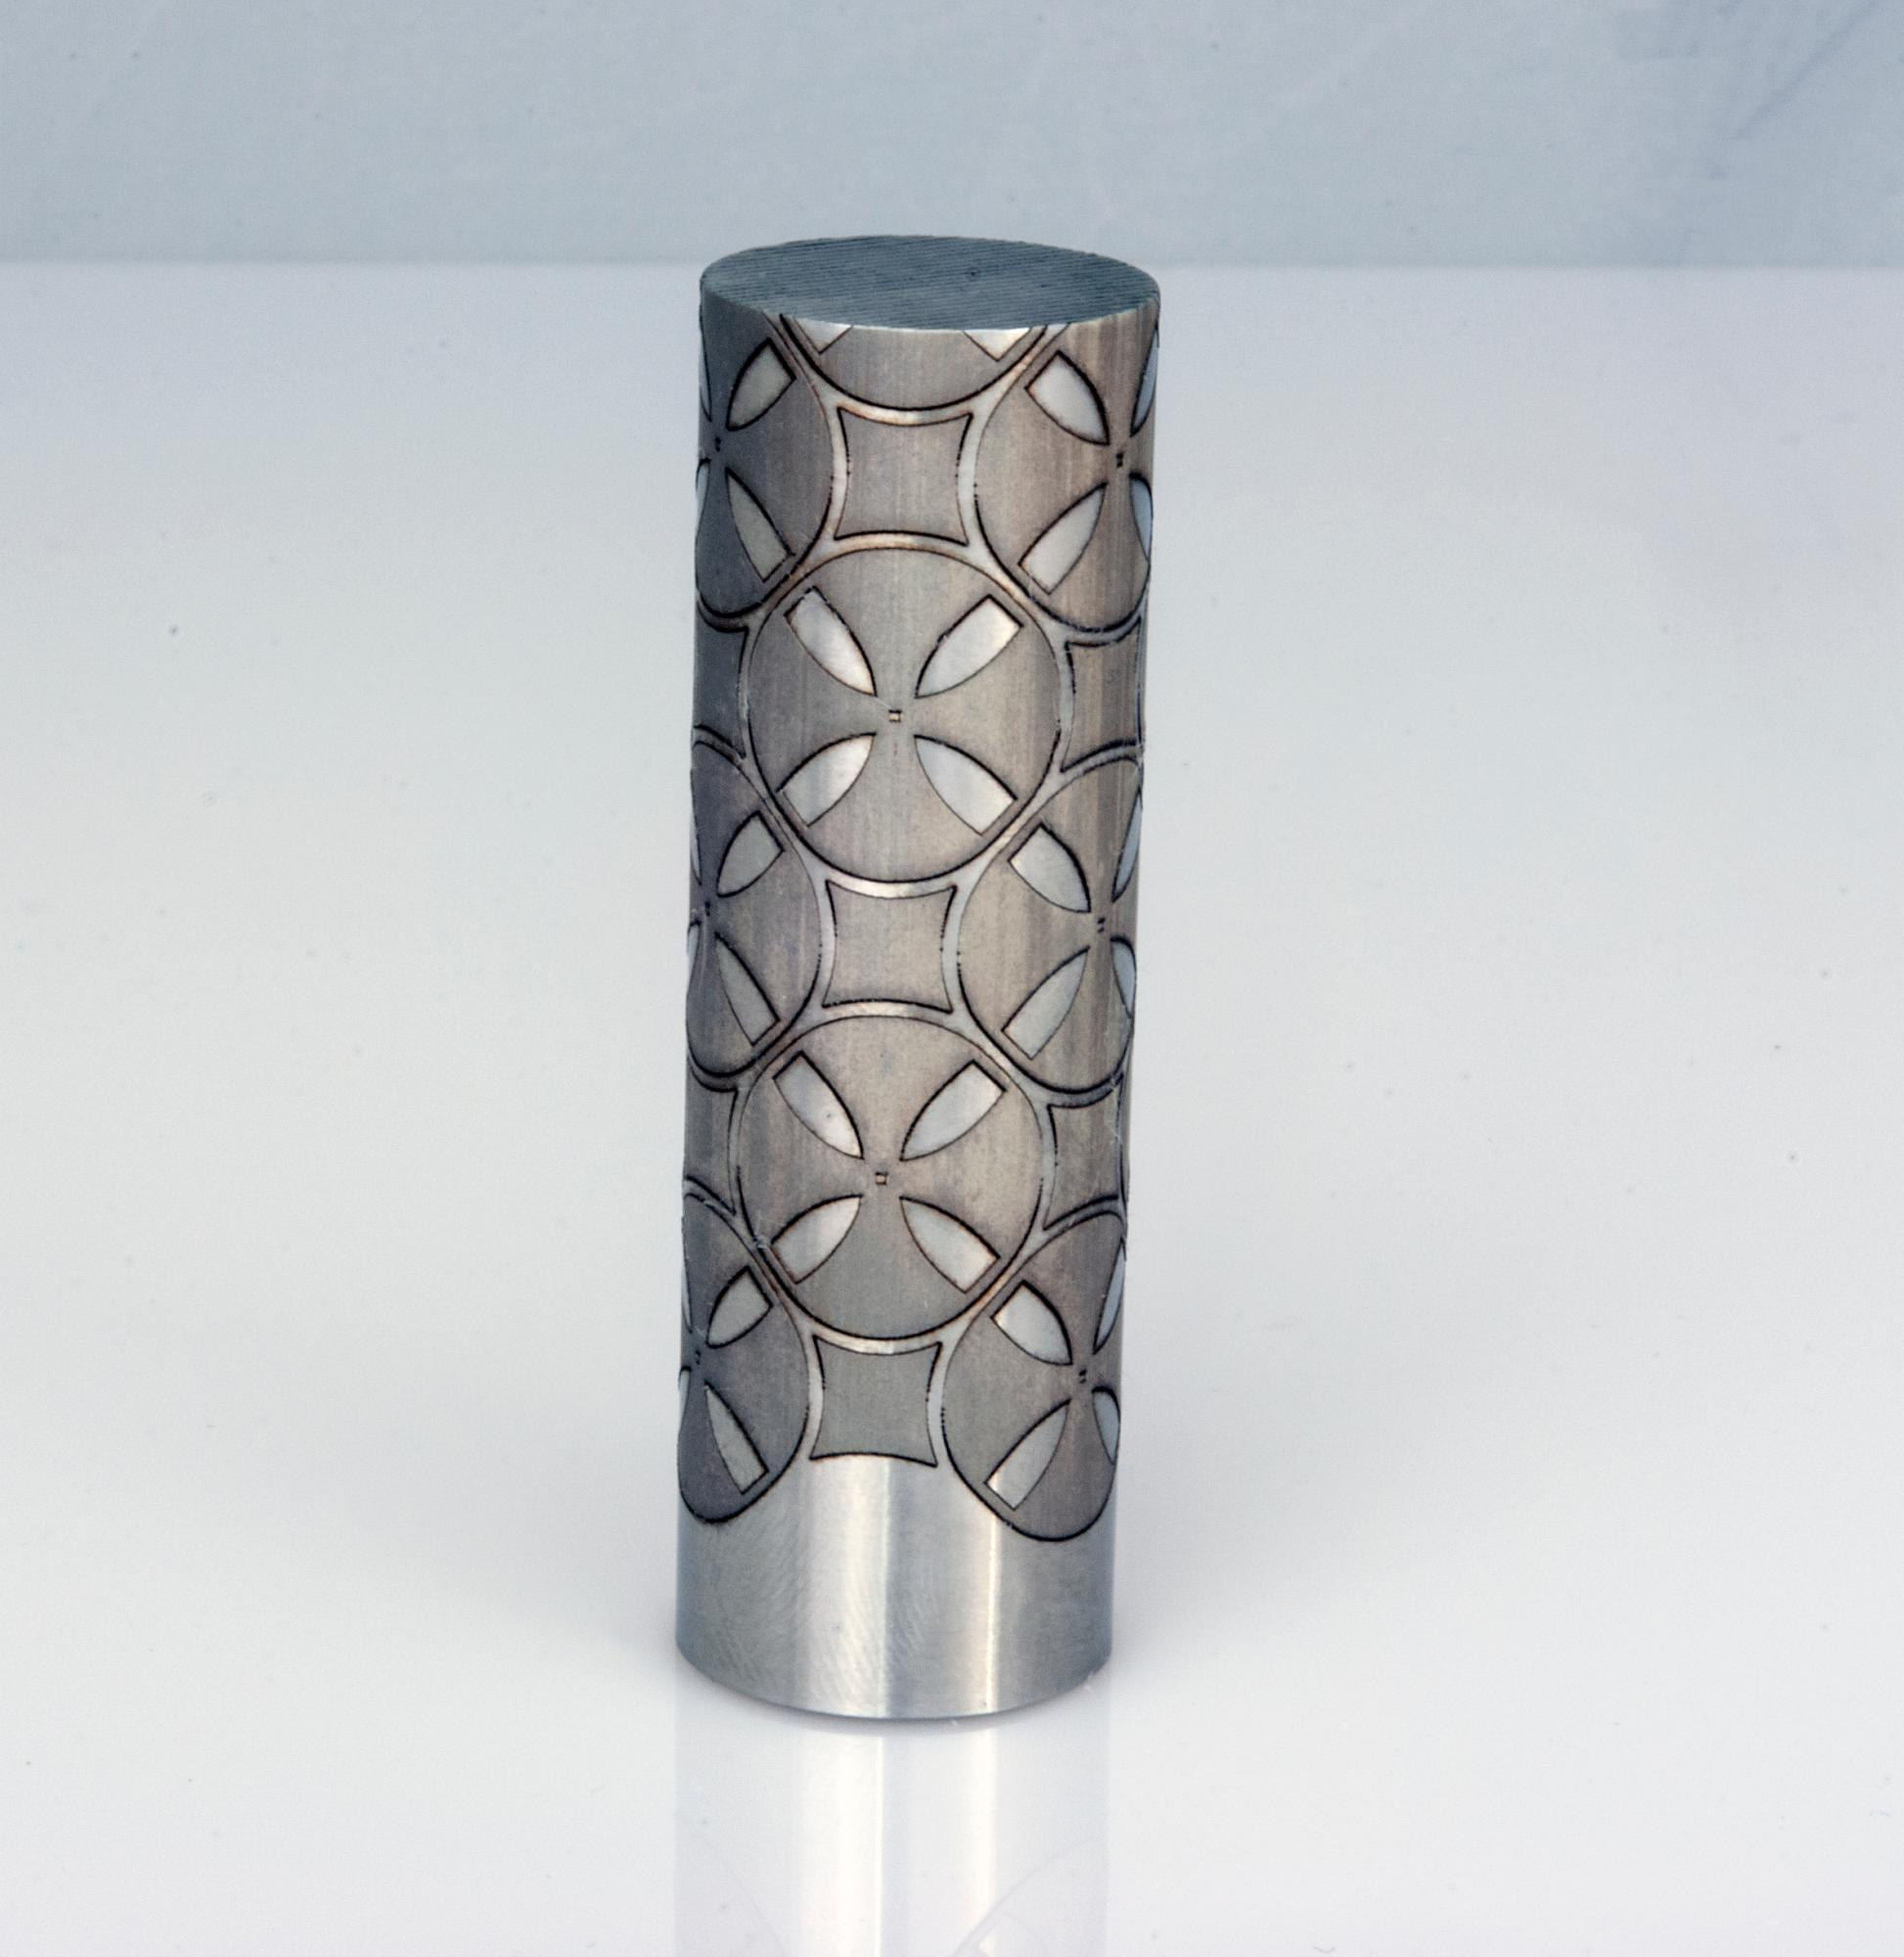 Continuous patterns on cylindrical objects